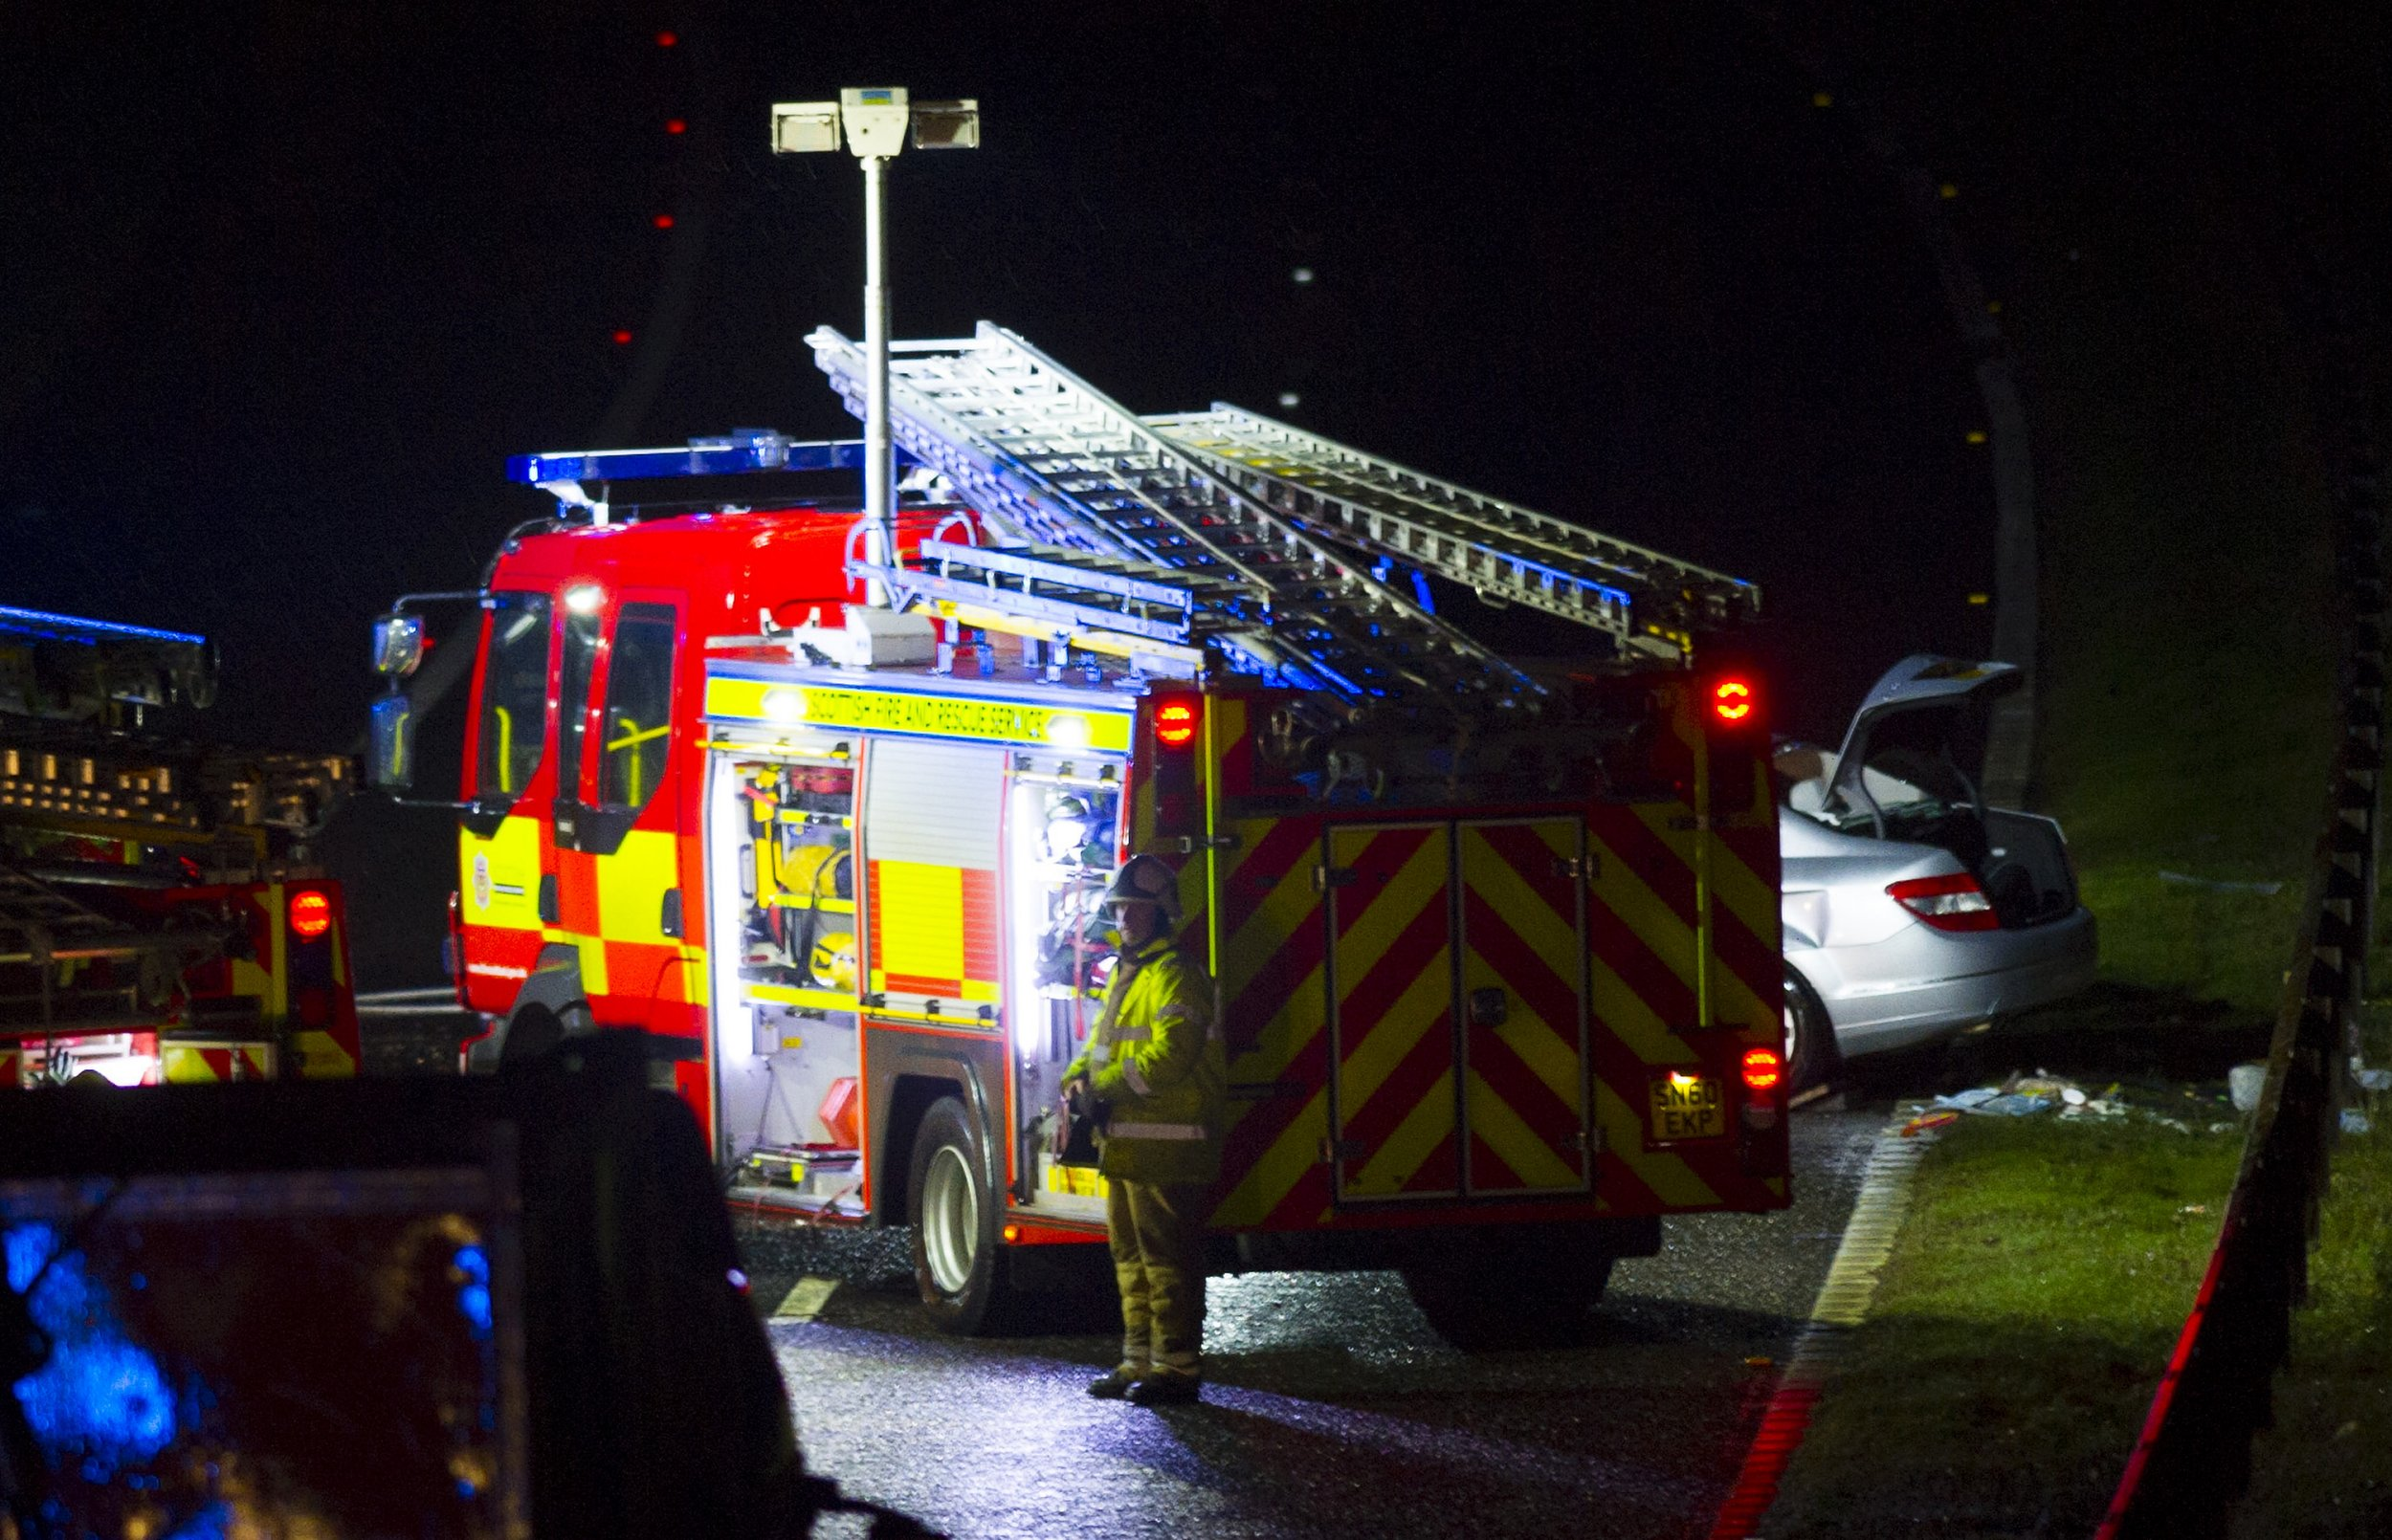 Scottish police along with the Fire and Rescue Service tend to a road traffic on the south bound carriageway of the M9 near Linlithgow. Police Scotland confirmed that there are two fatalities and others in hospital as a result of the collision. Featuring: Atmosphere Where: Linlithgow, Scotland, United Kingdom When: 29 Jan 2016 Credit: WENN.com